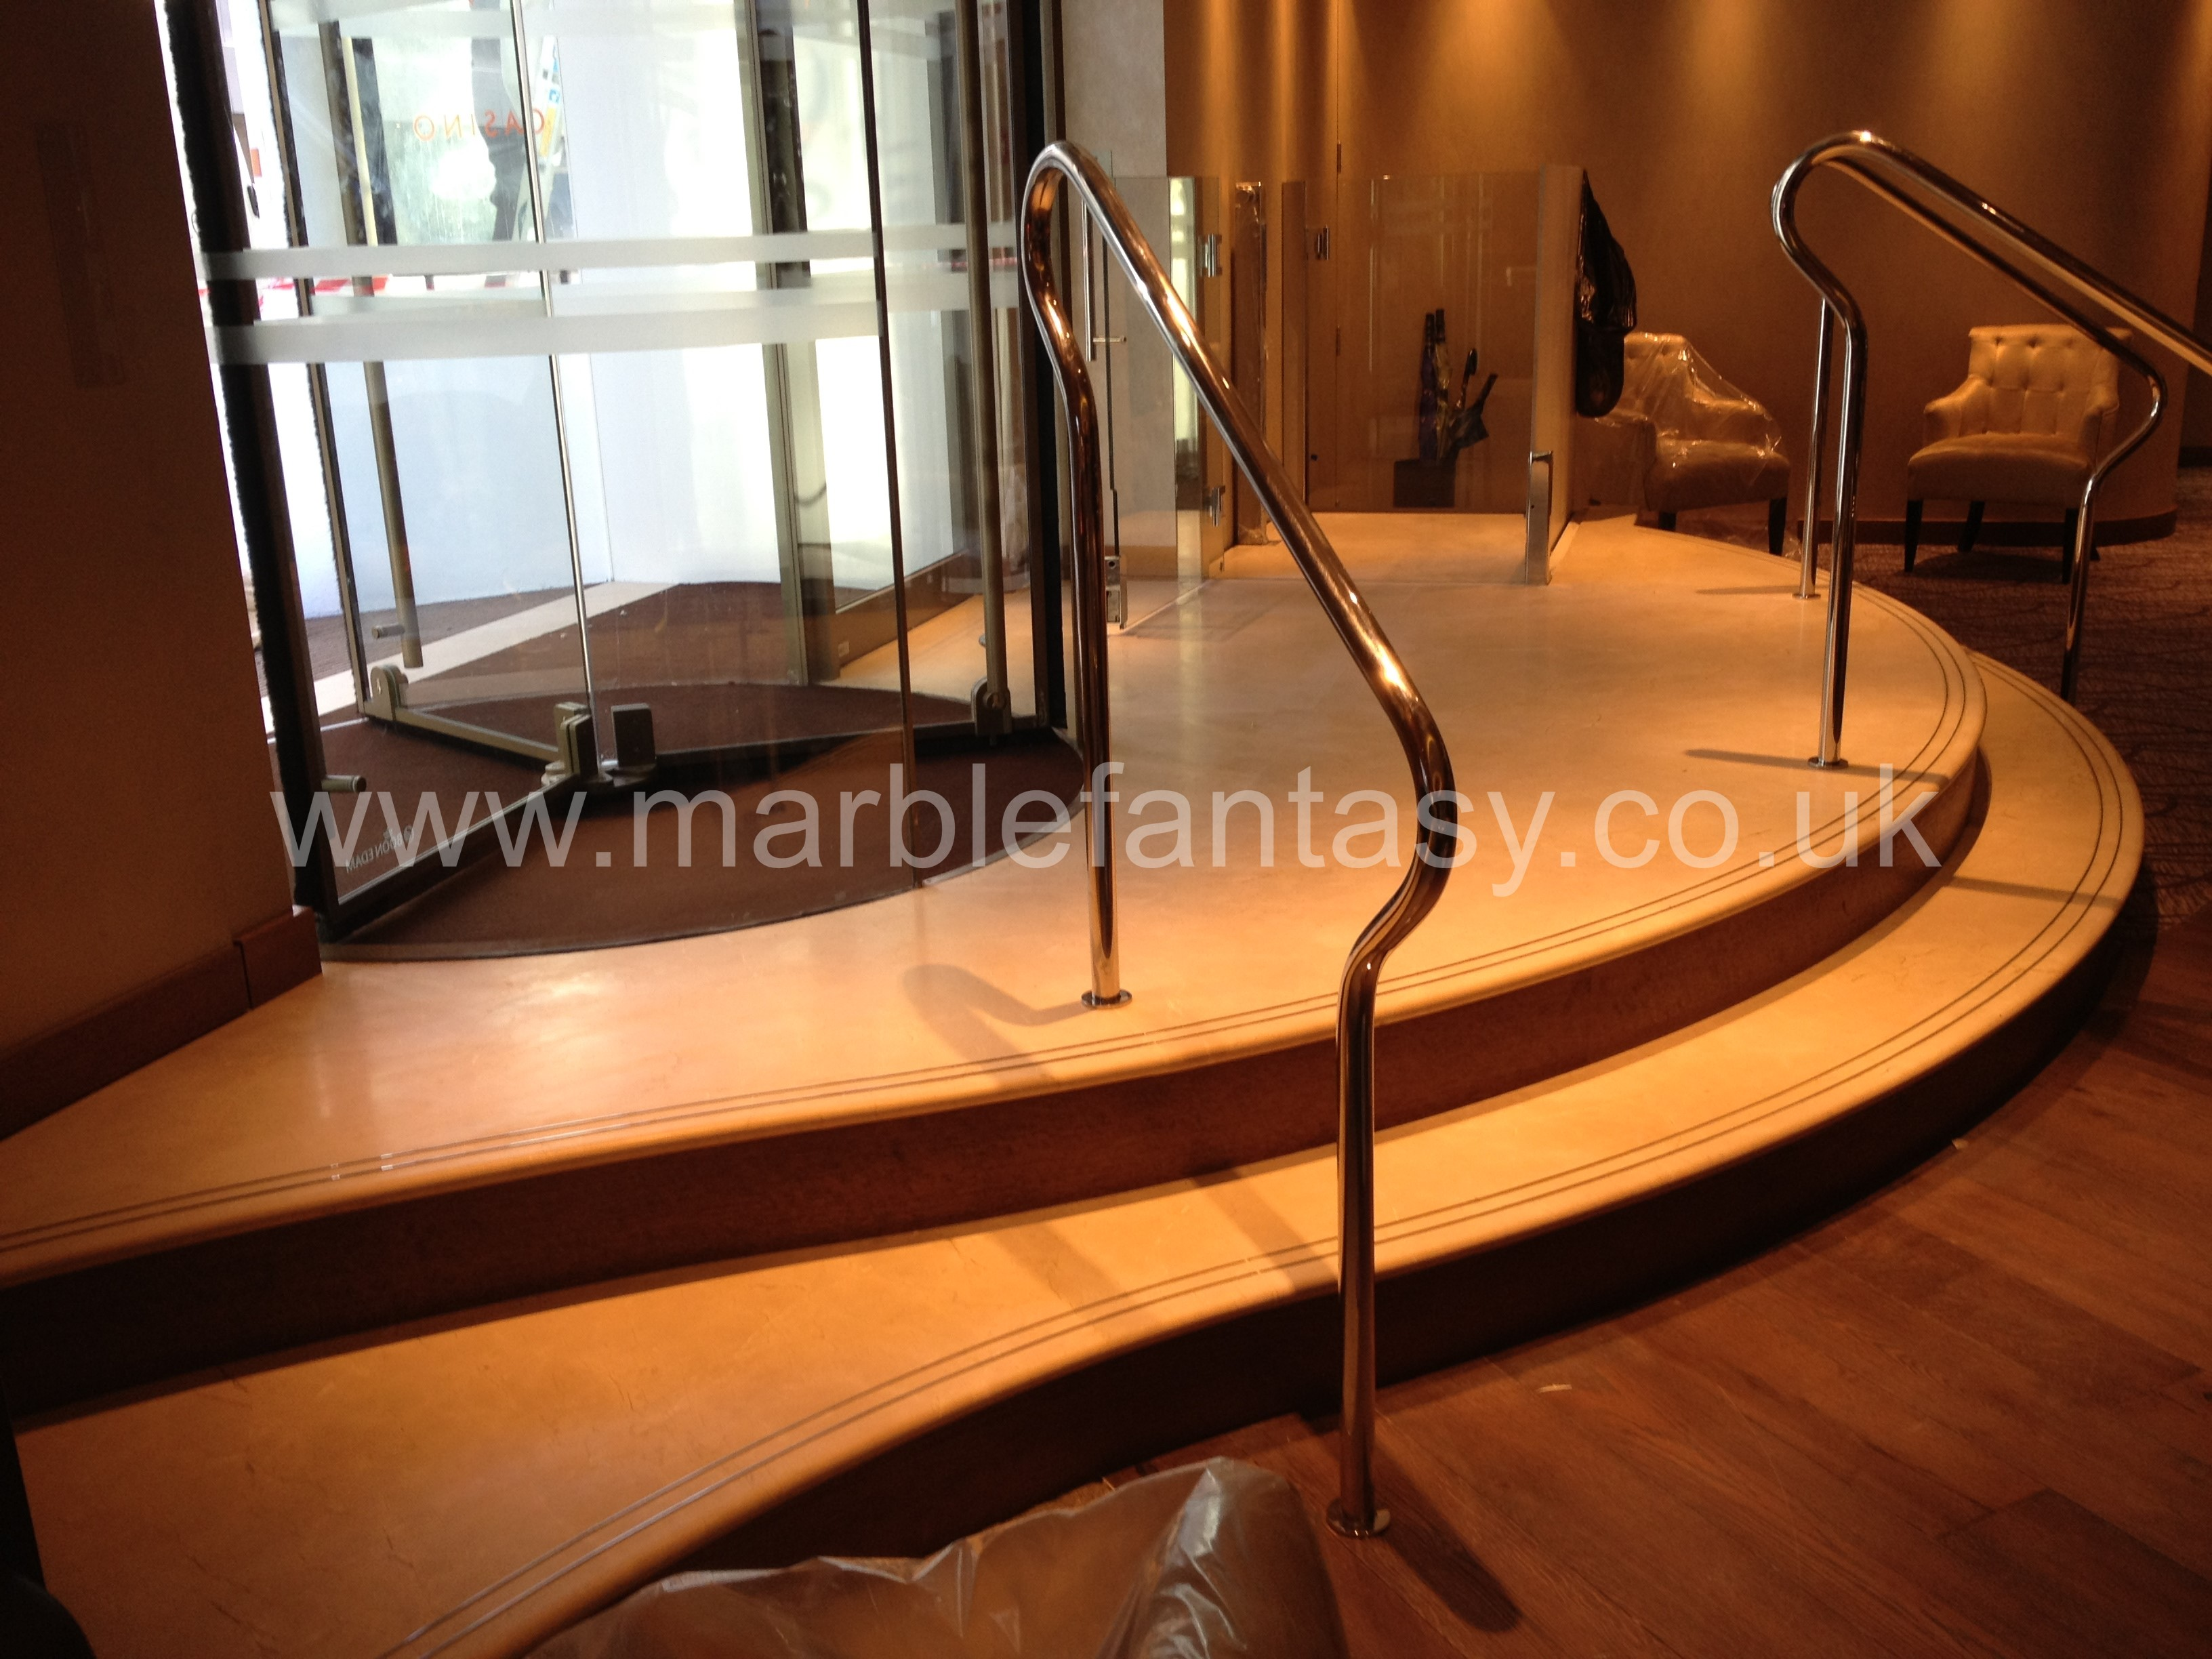 Marble Fantasy Stairs